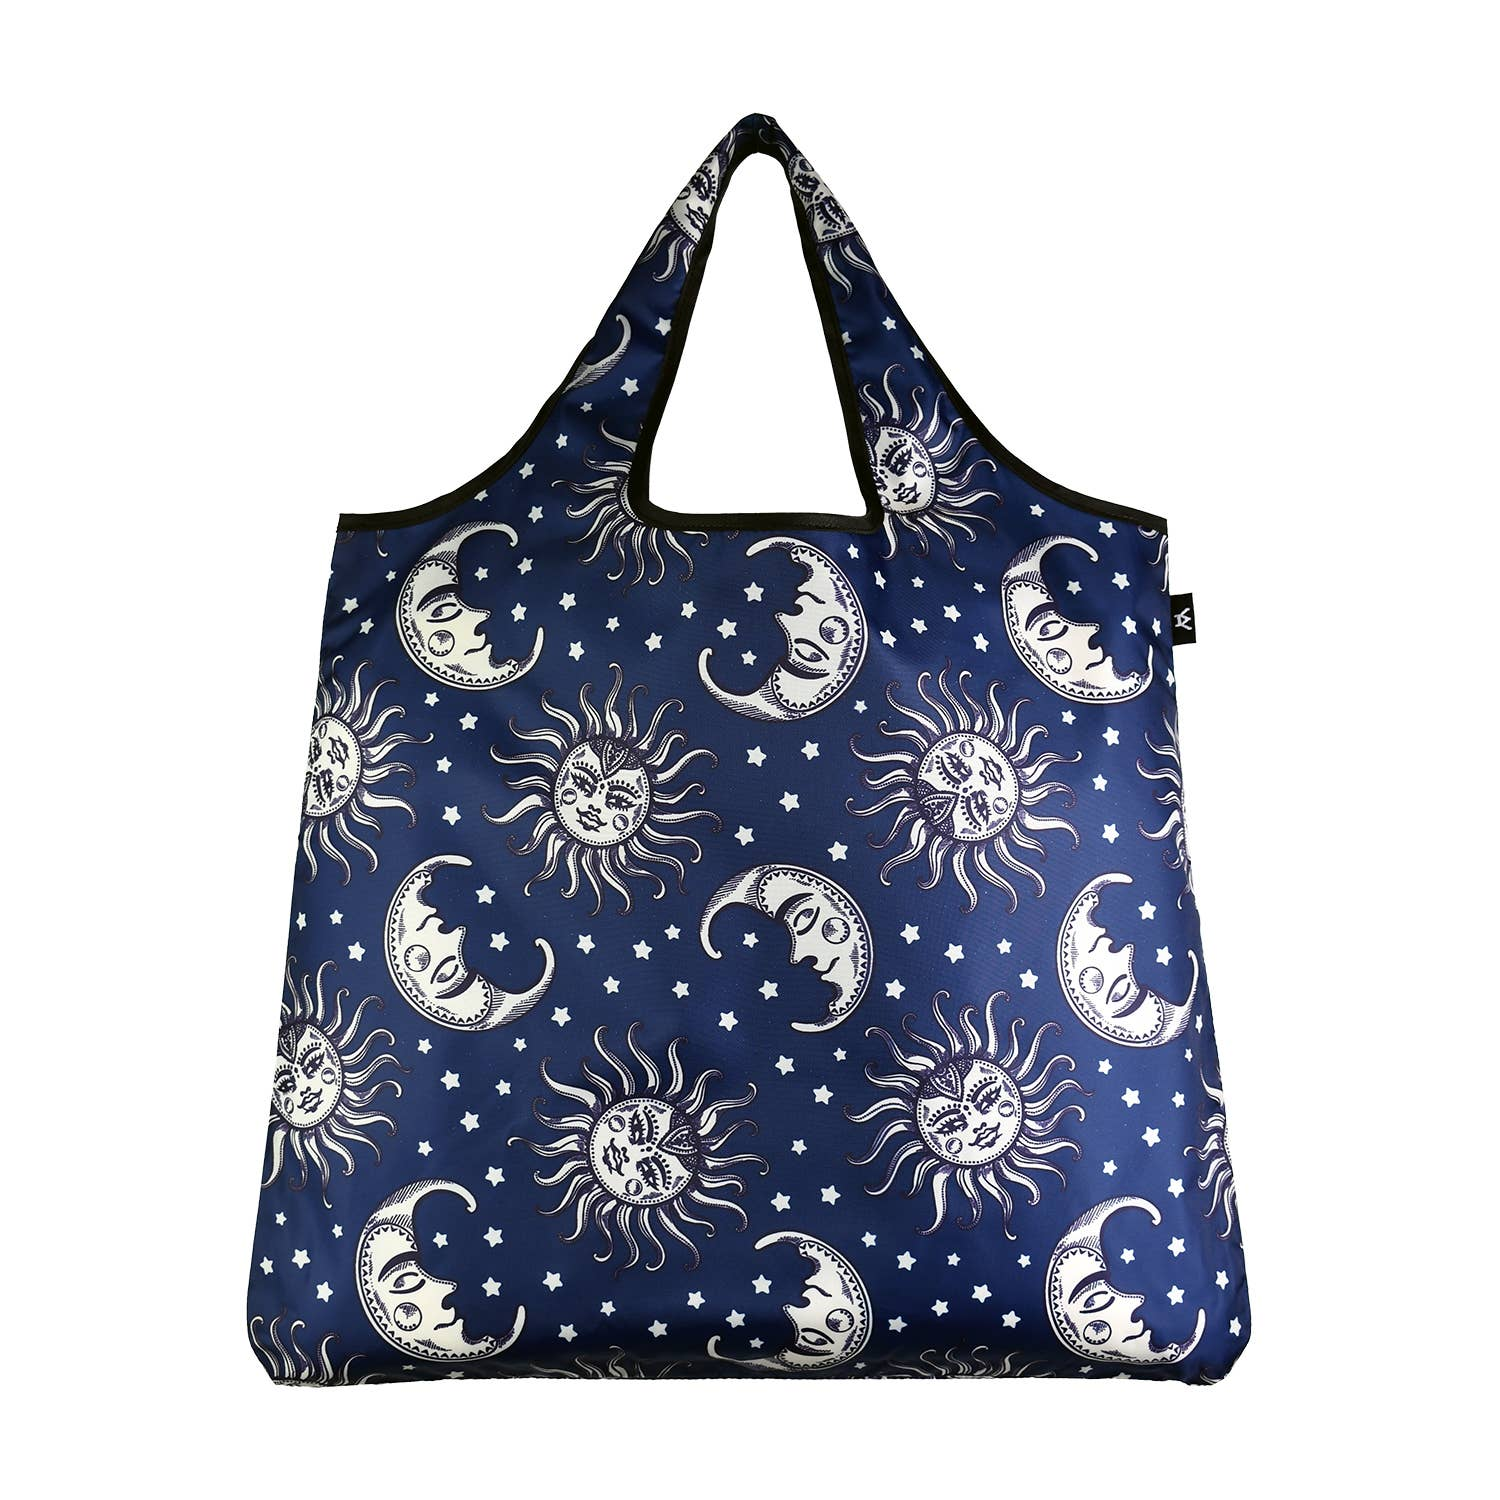 YaYbag ORIGINAL - 4383 Moon and Sun - Reusable Bag